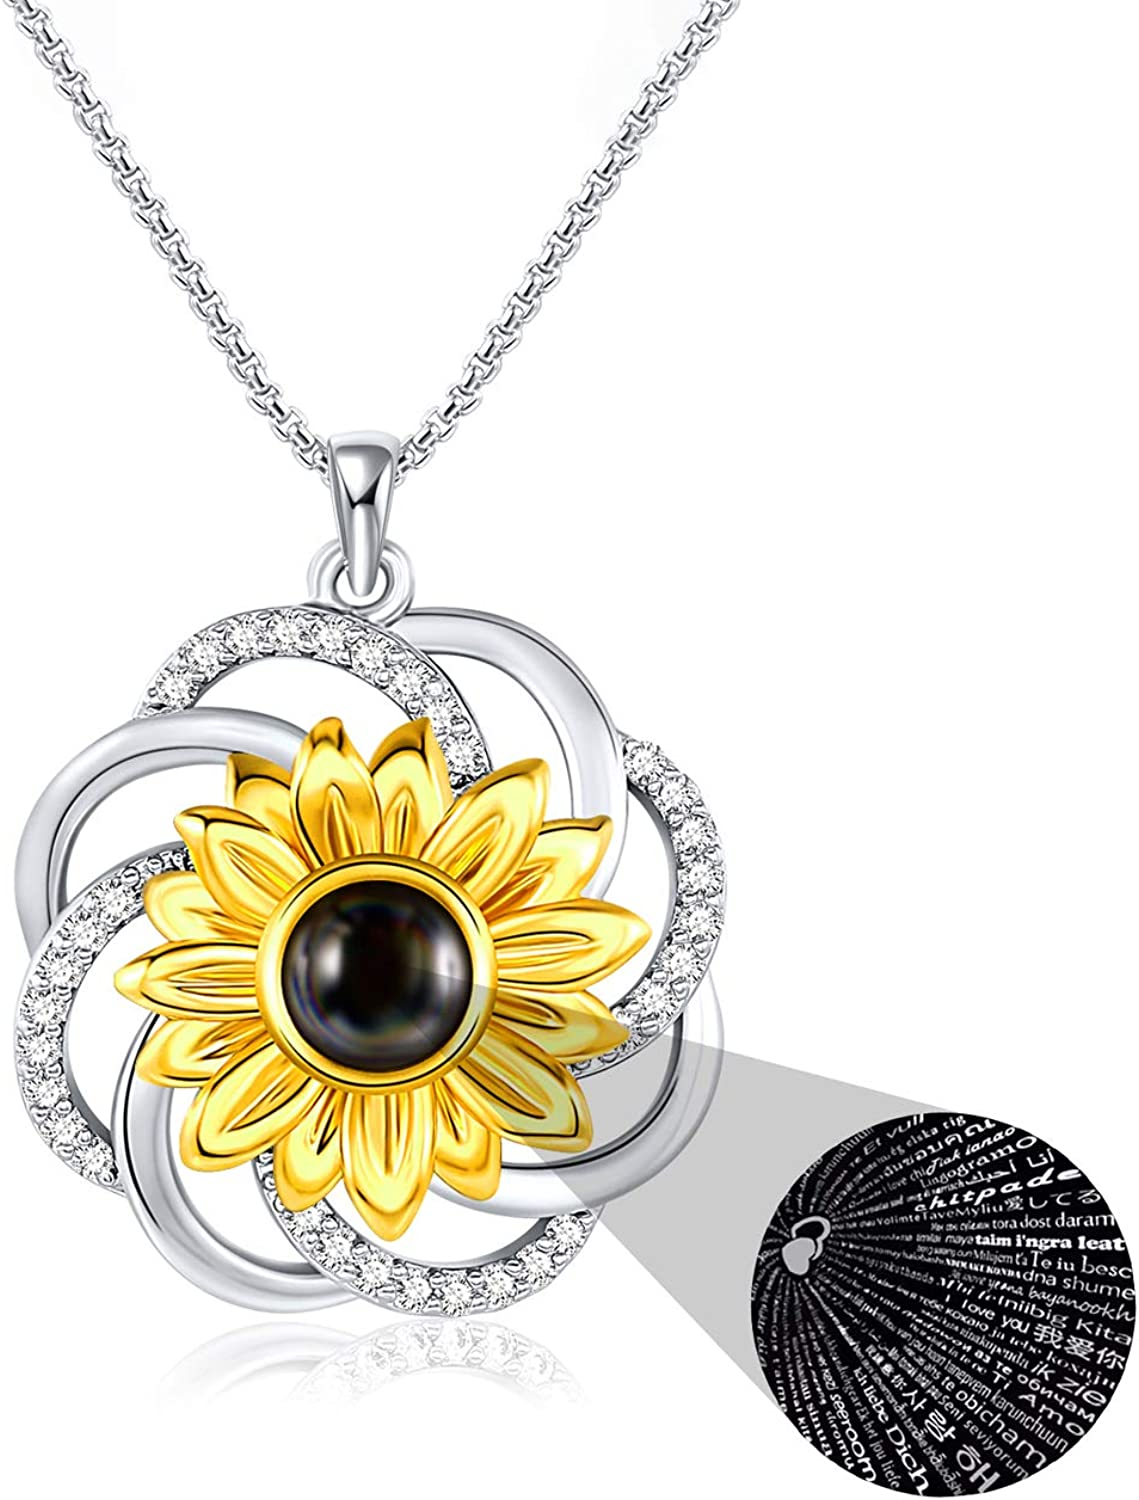 SNZM Sunflower Necklace for Women - 100 Languages I Love You Necklace Anniversary Present for Wife Girlfriend Her